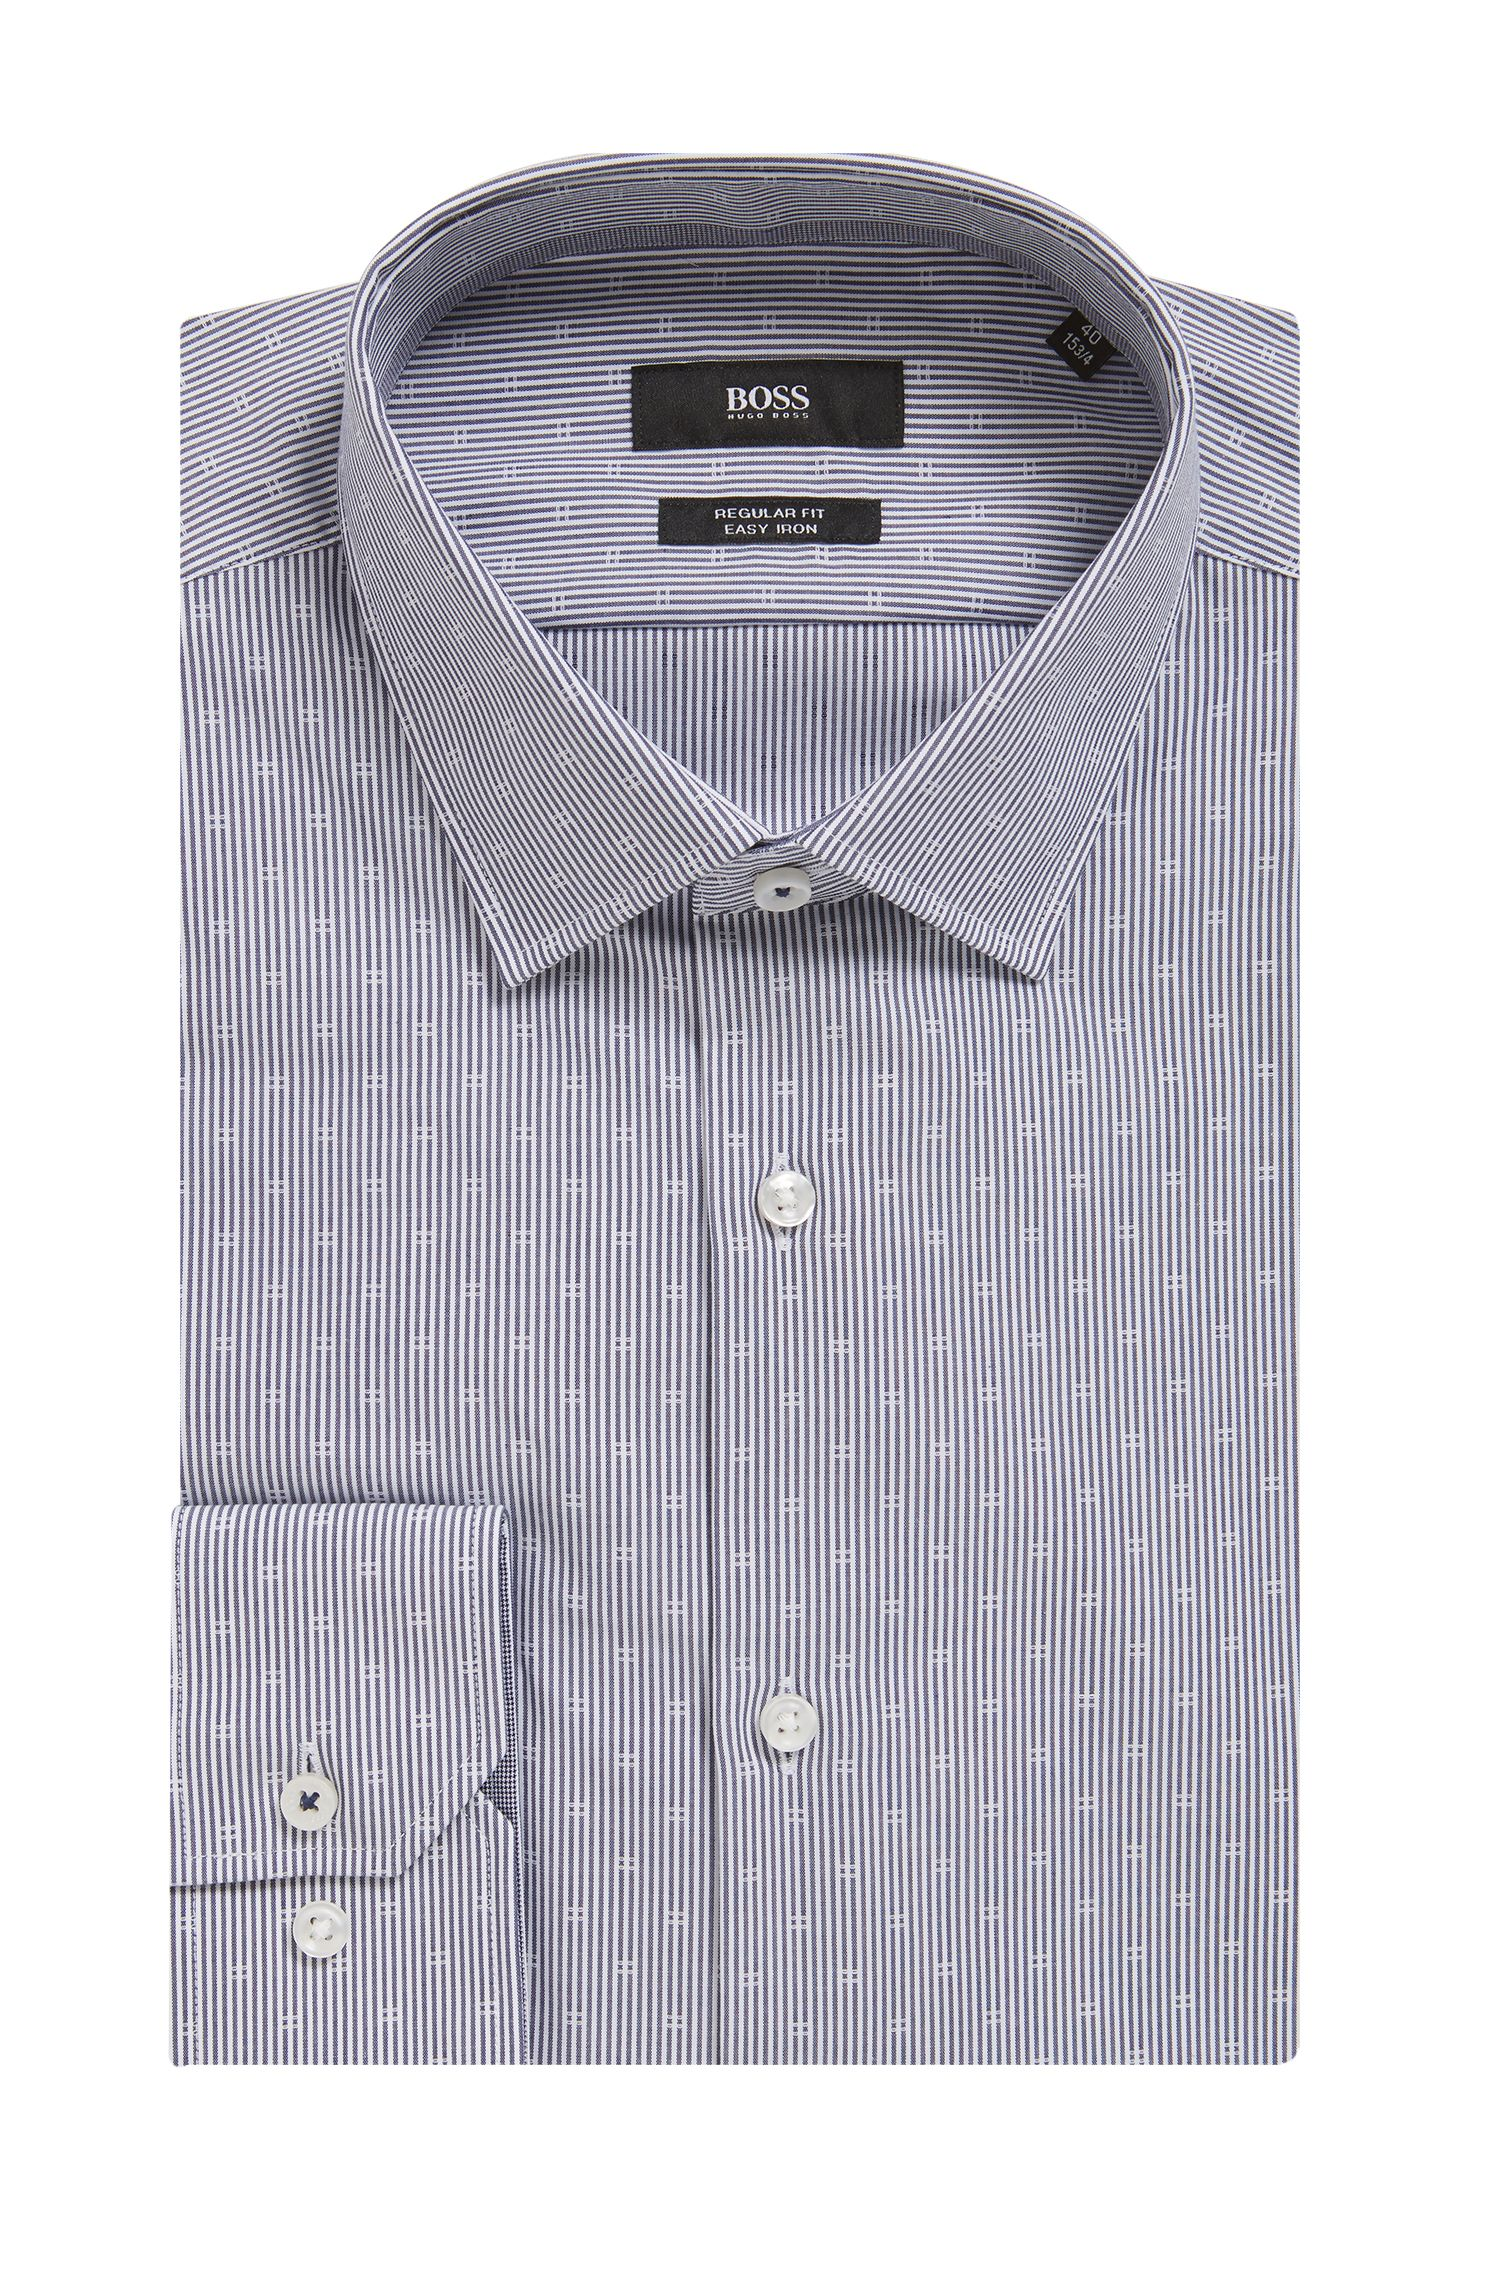 Regular-fit shirt in easy-iron dobby cotton poplin, Dark Blue